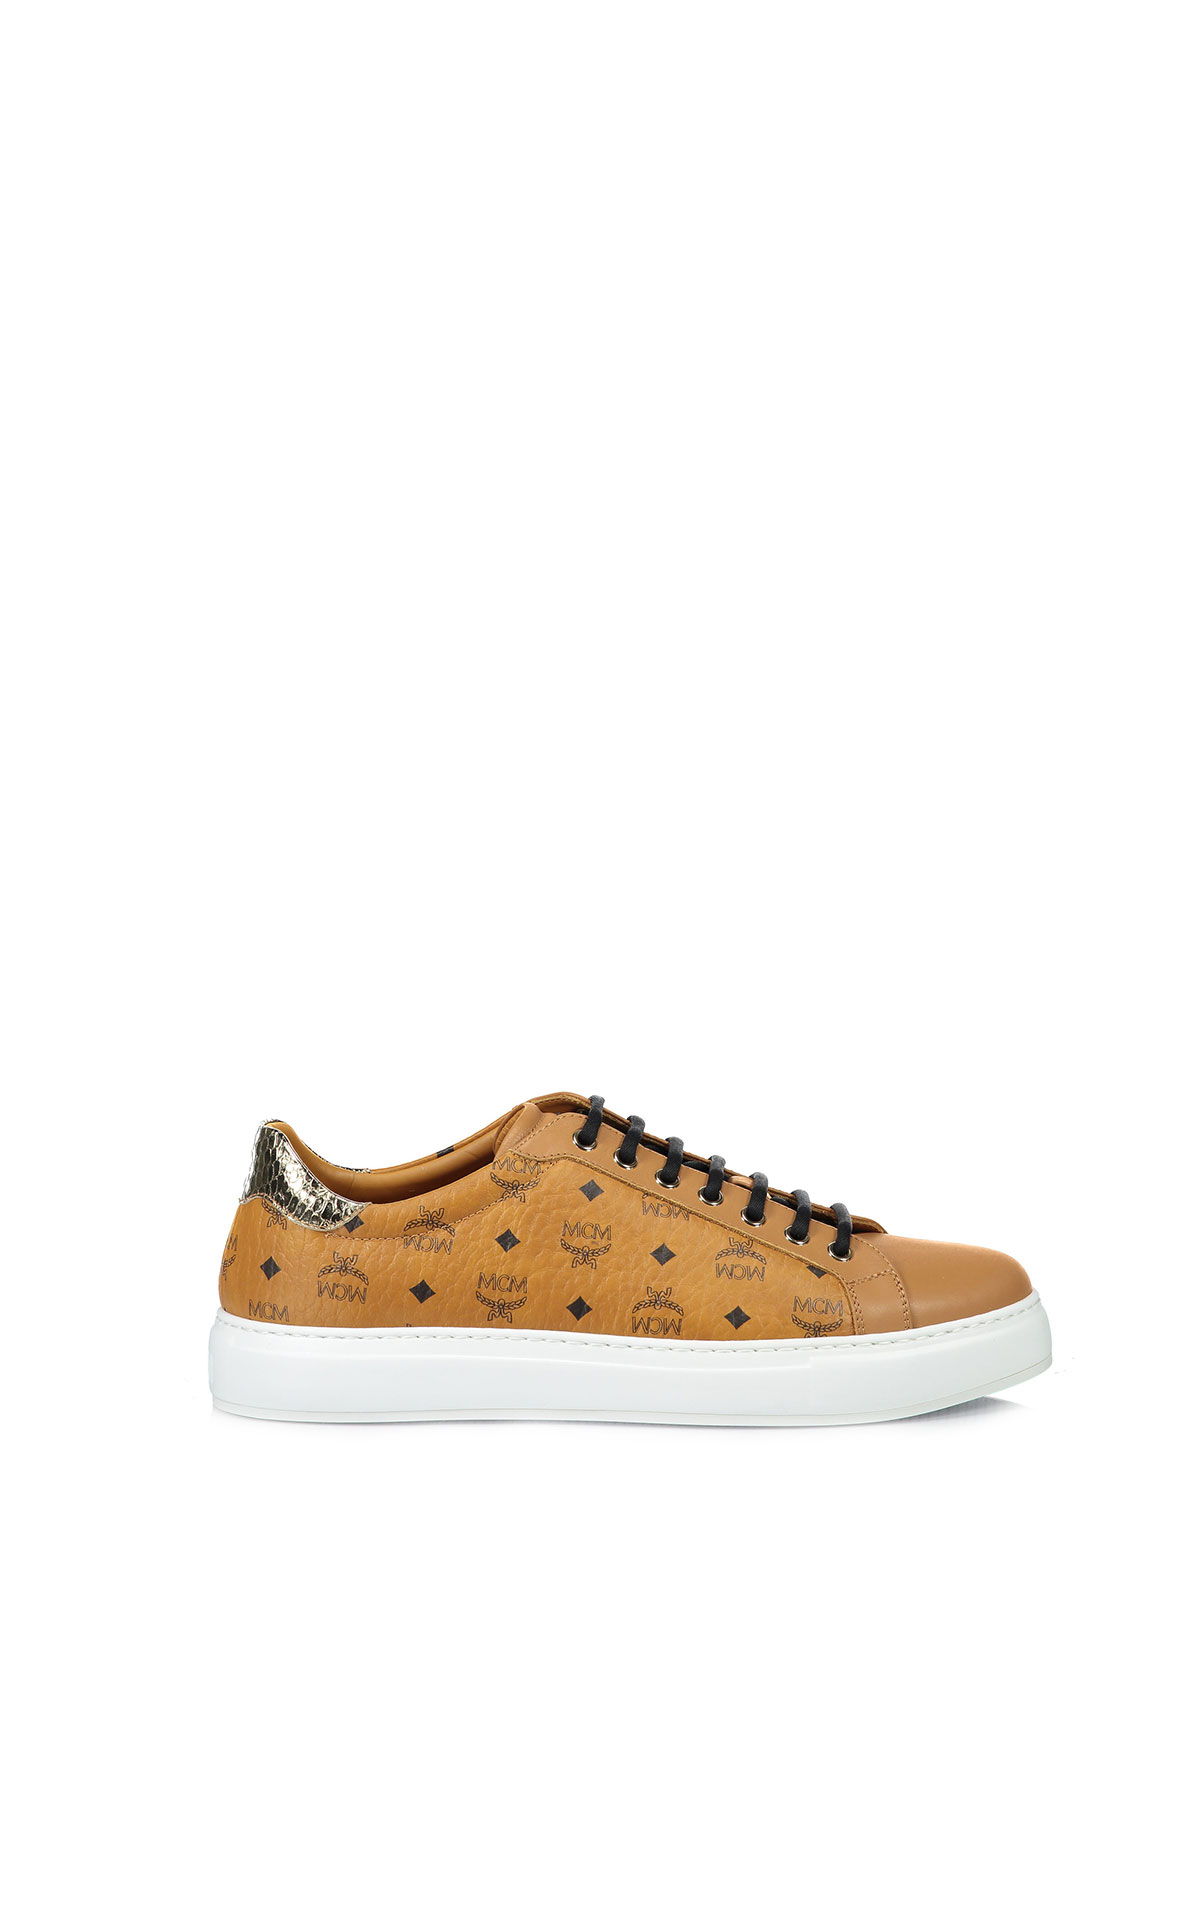 MCM Logo group unisex sneakers from Bicester Village